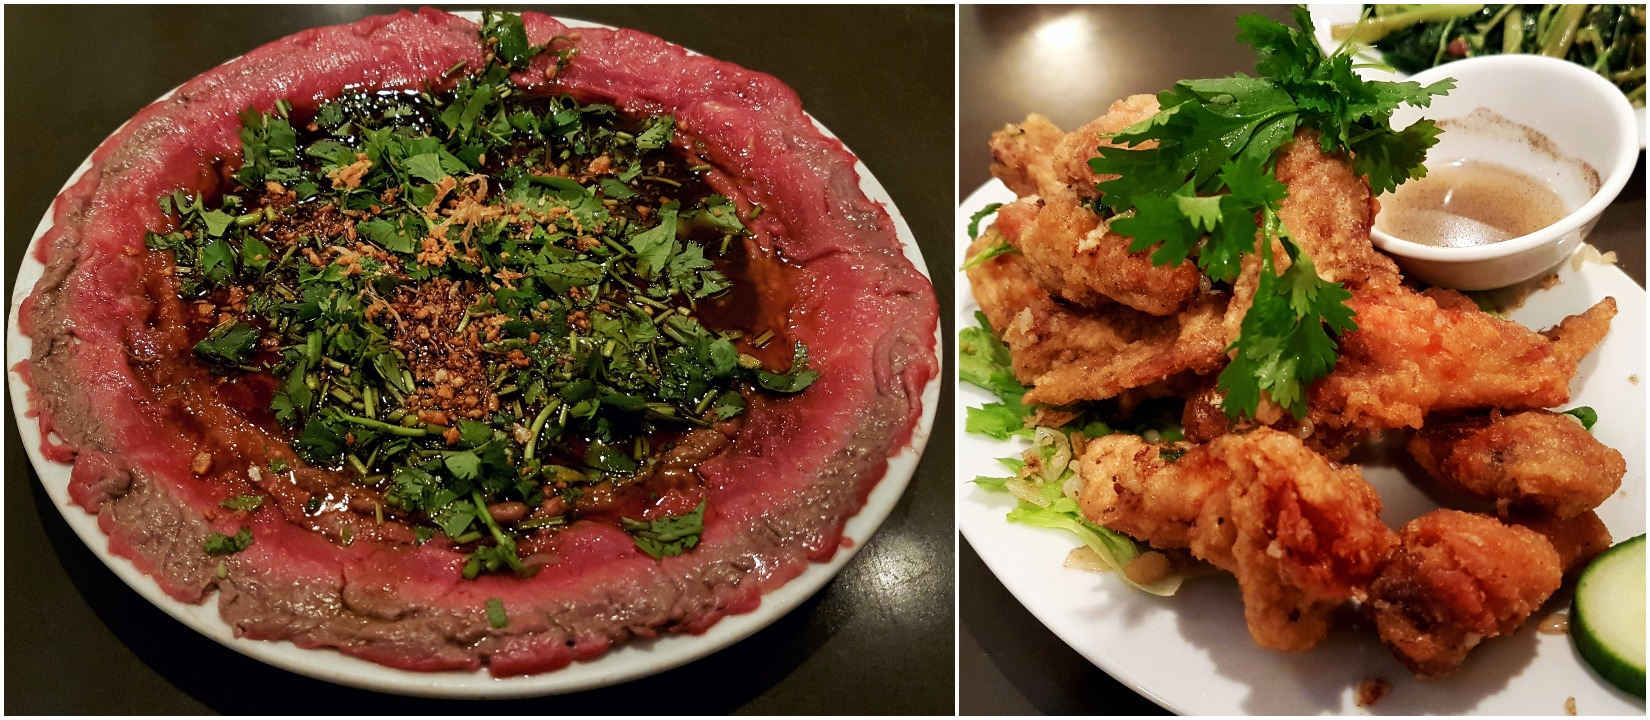 Marinated butter beef and Deep fried chicken wings